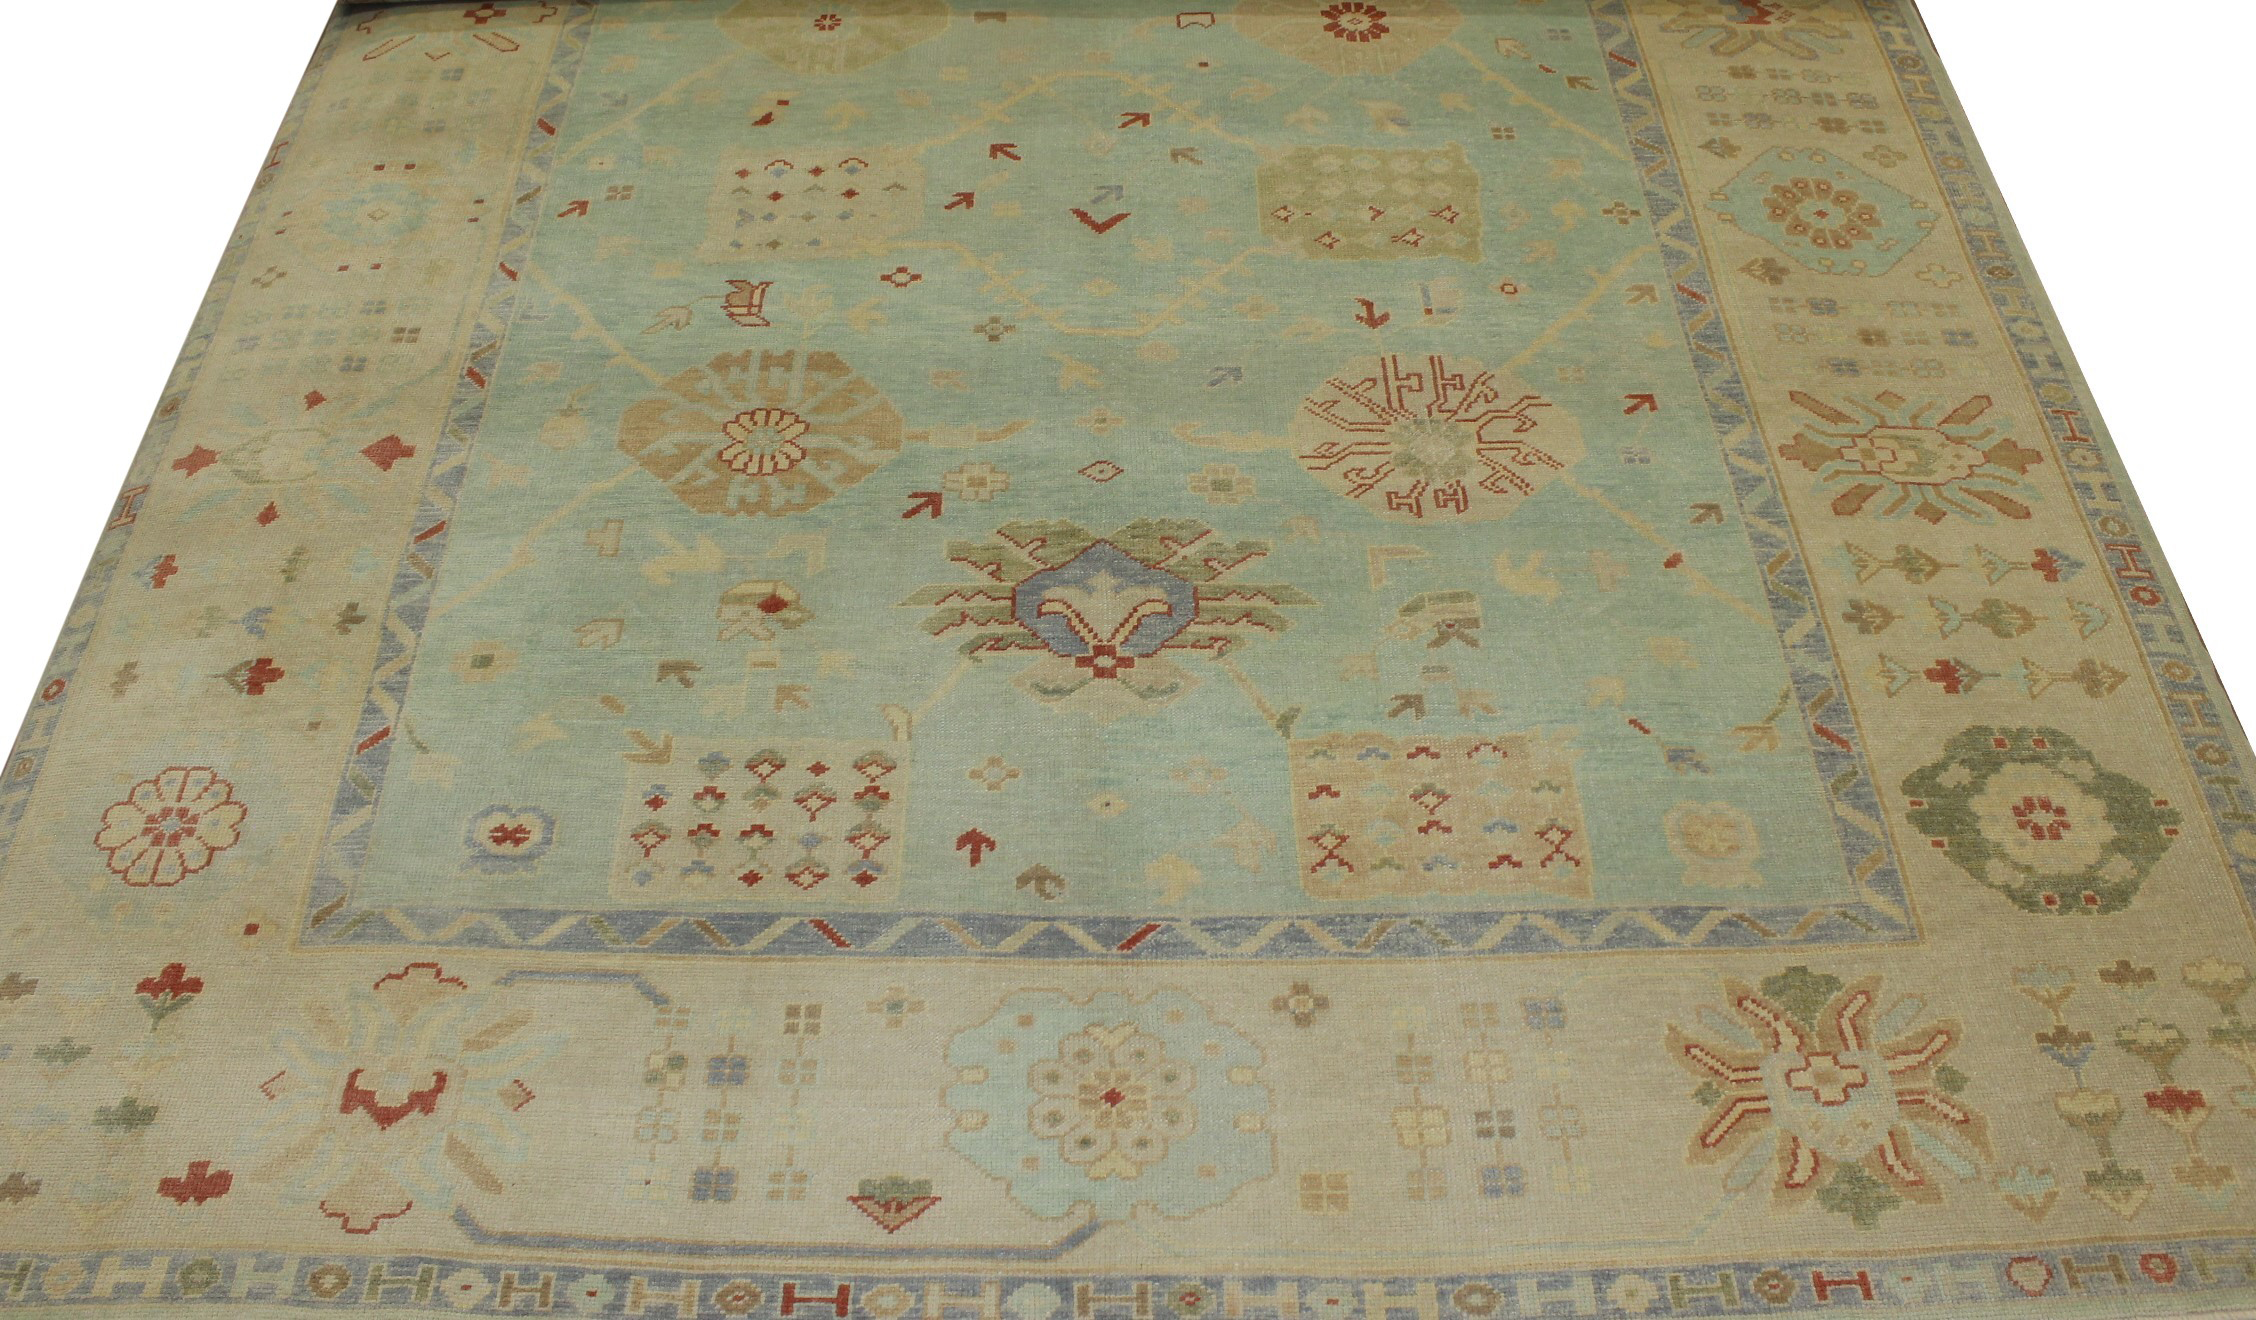 10x14 Oushak Hand Knotted Wool Area Rug - MR20929